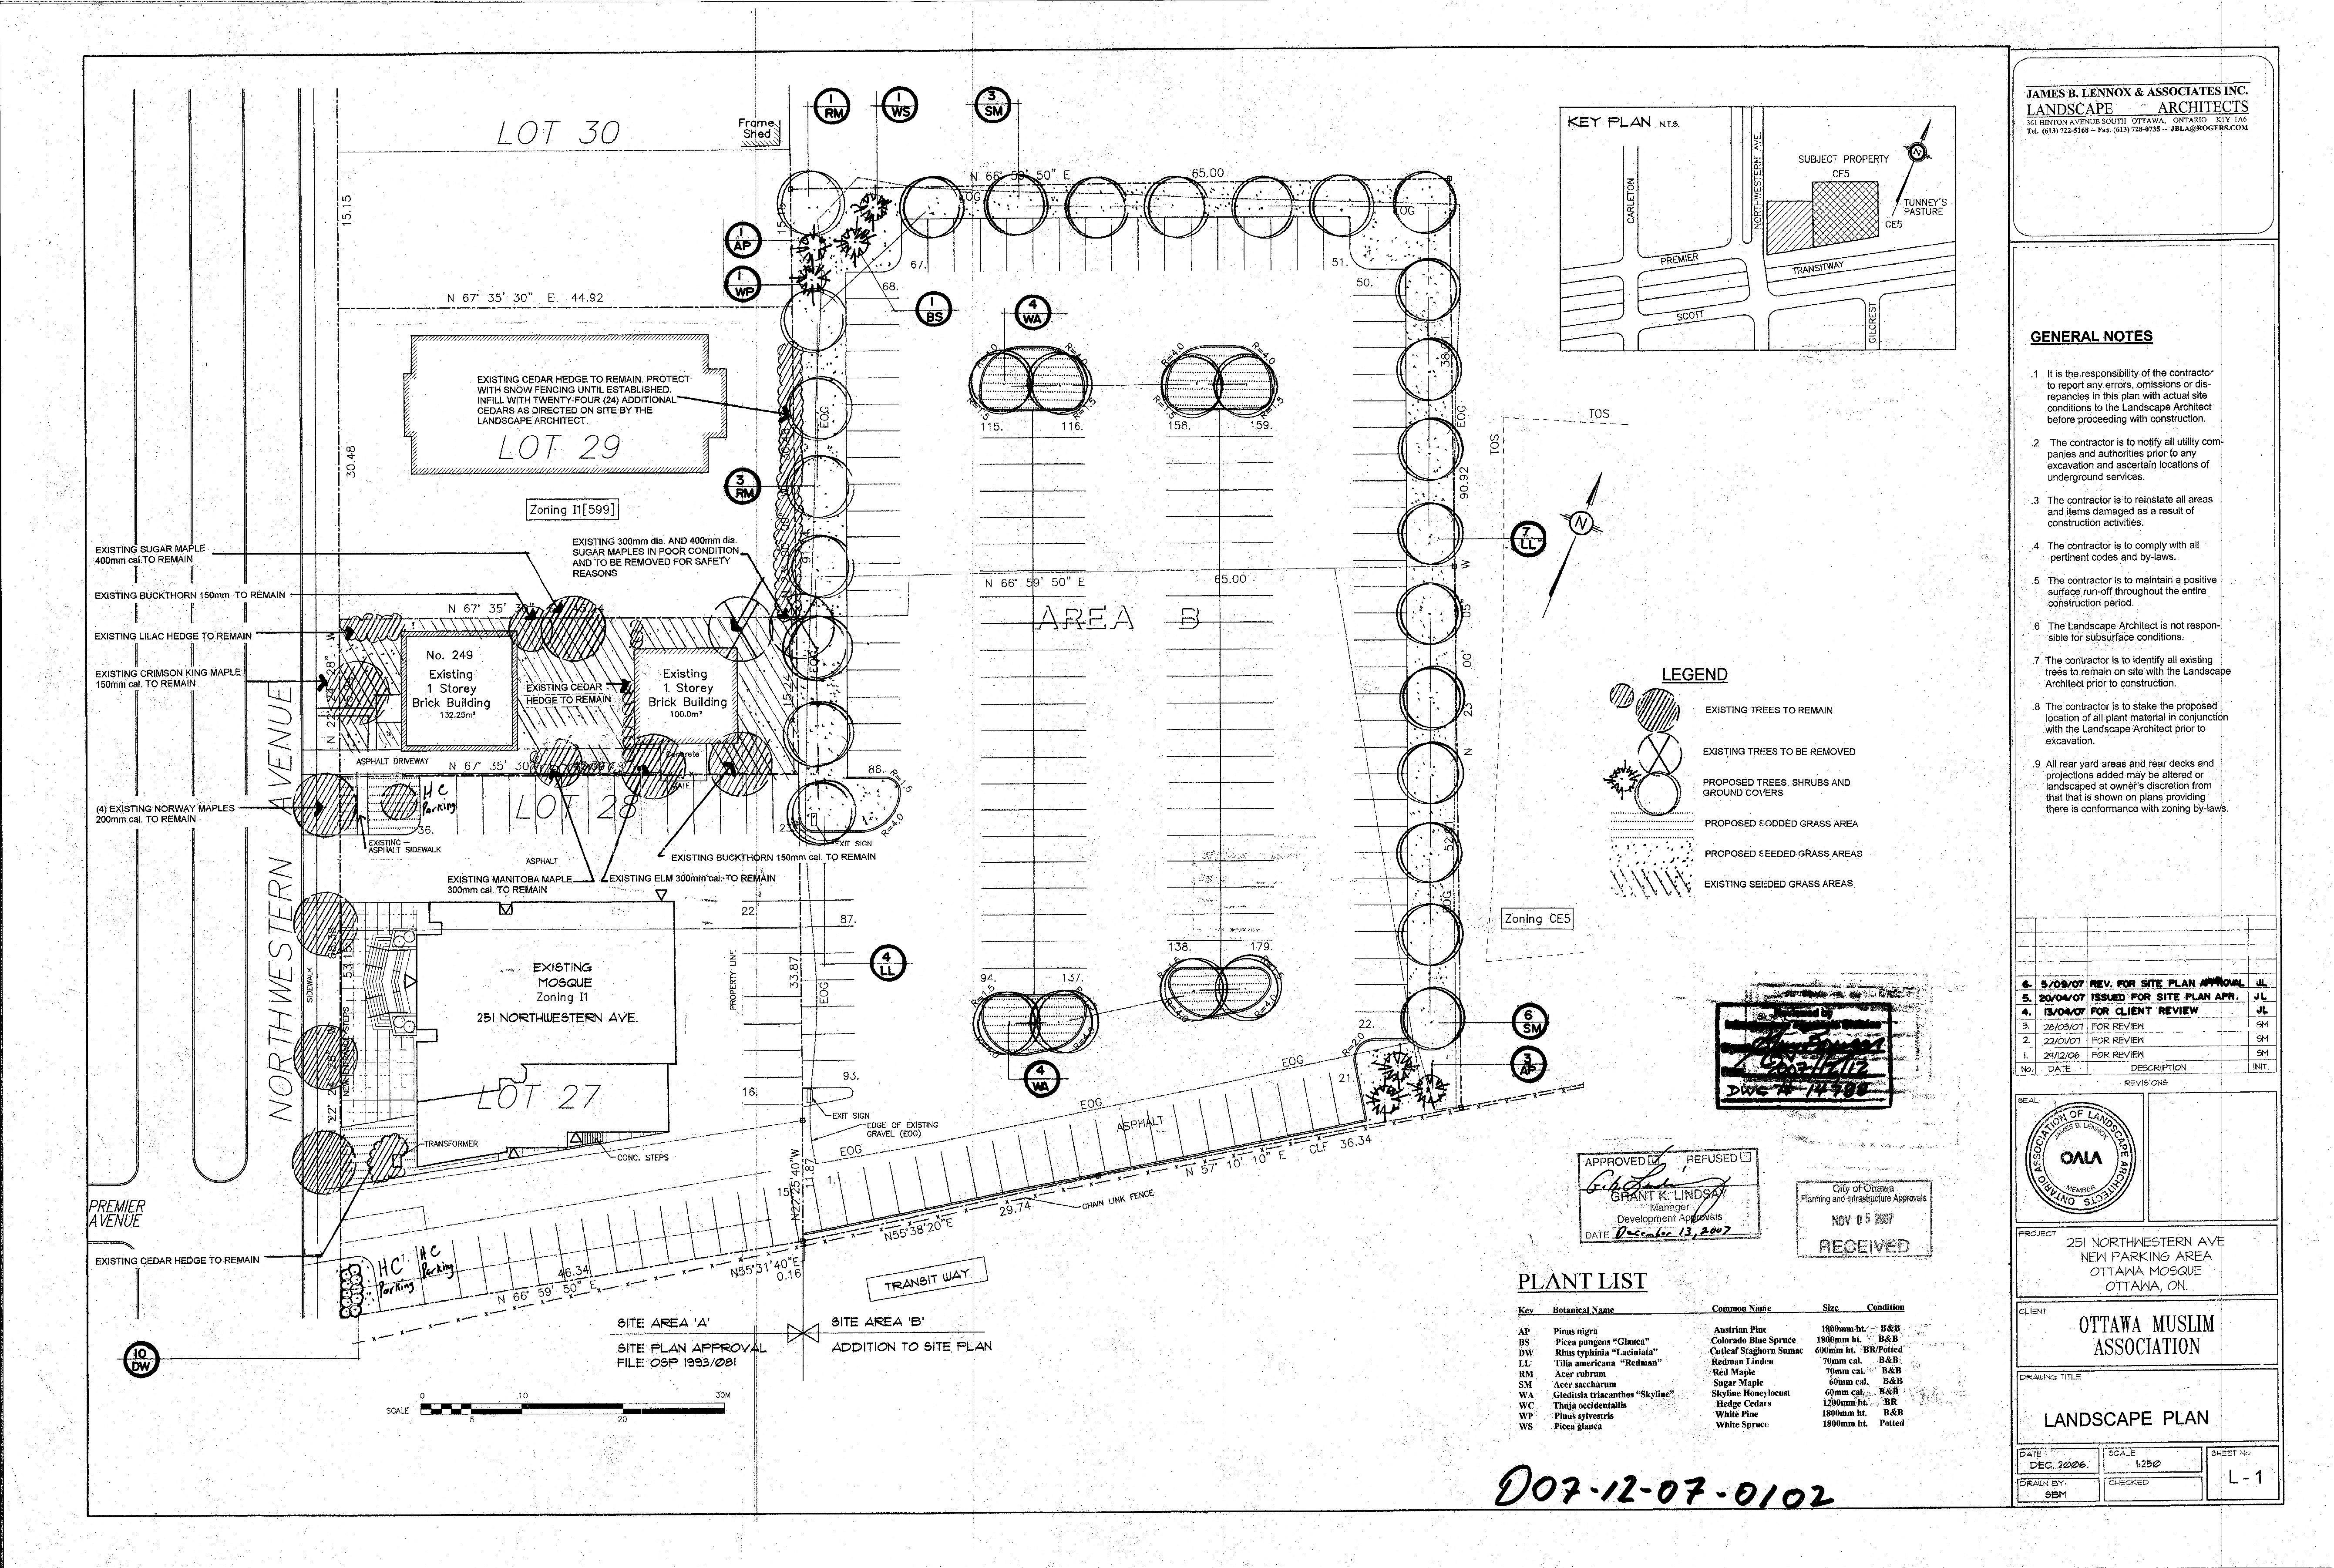 May 2013 champlain park community for Site plan with landscape